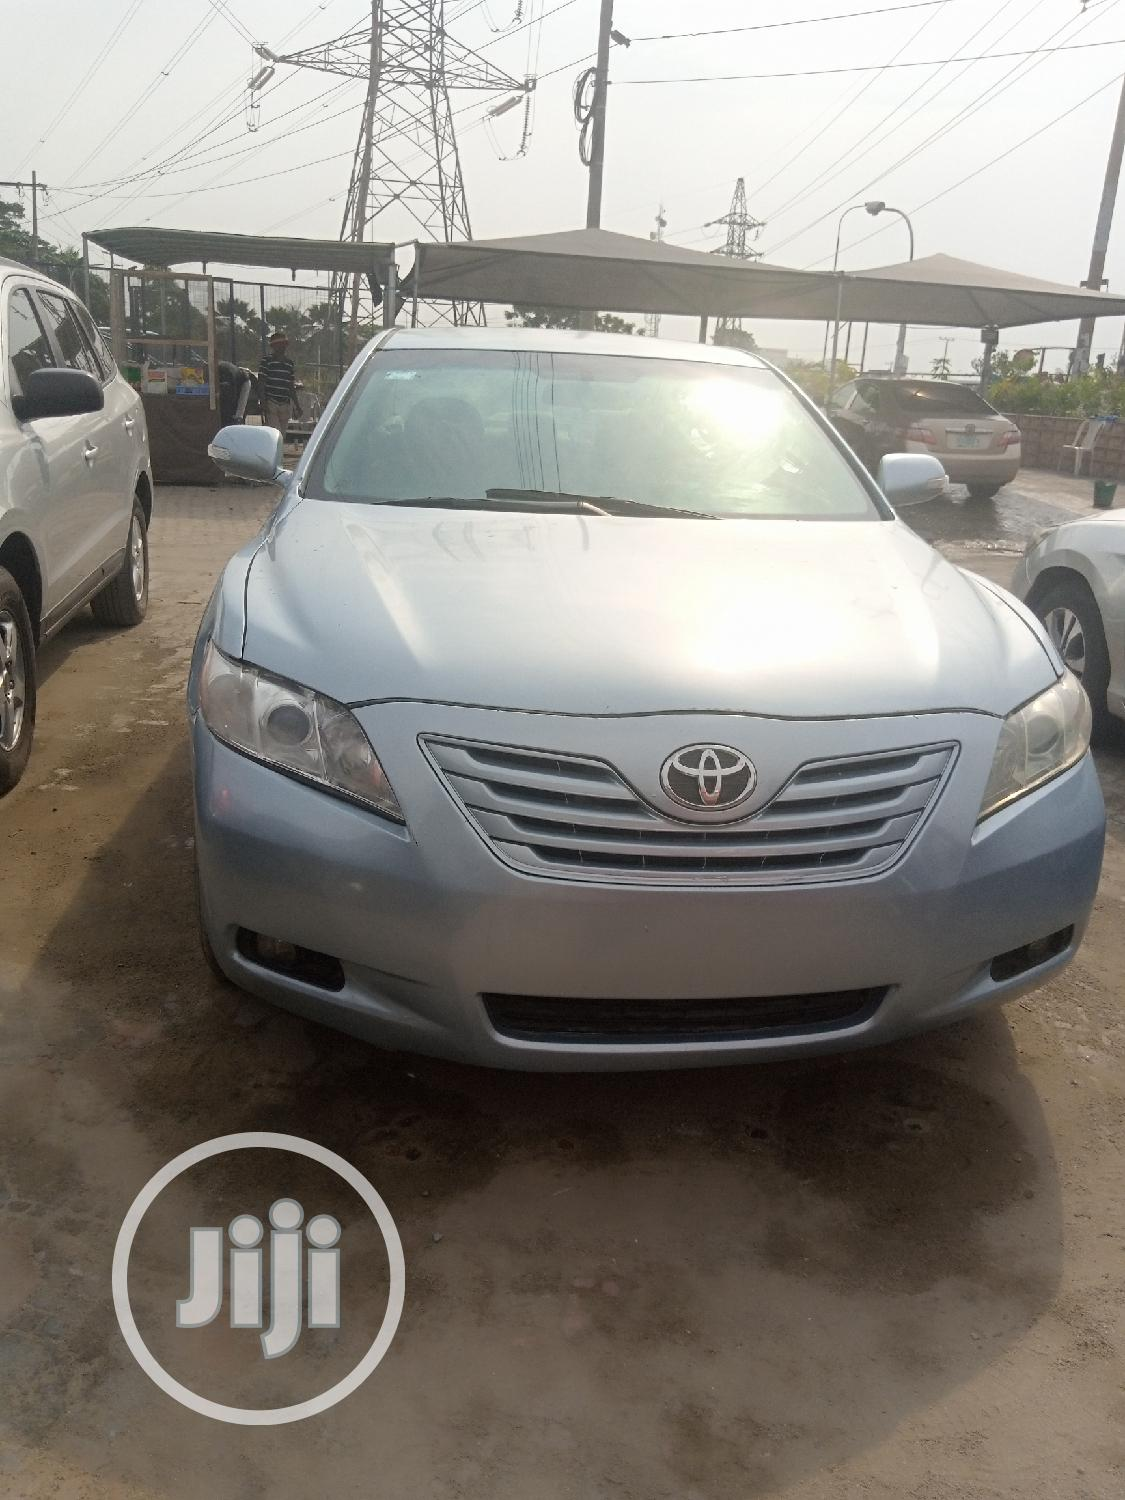 Toyota Camry 2007 Blue | Cars for sale in Ikoyi, Lagos State, Nigeria